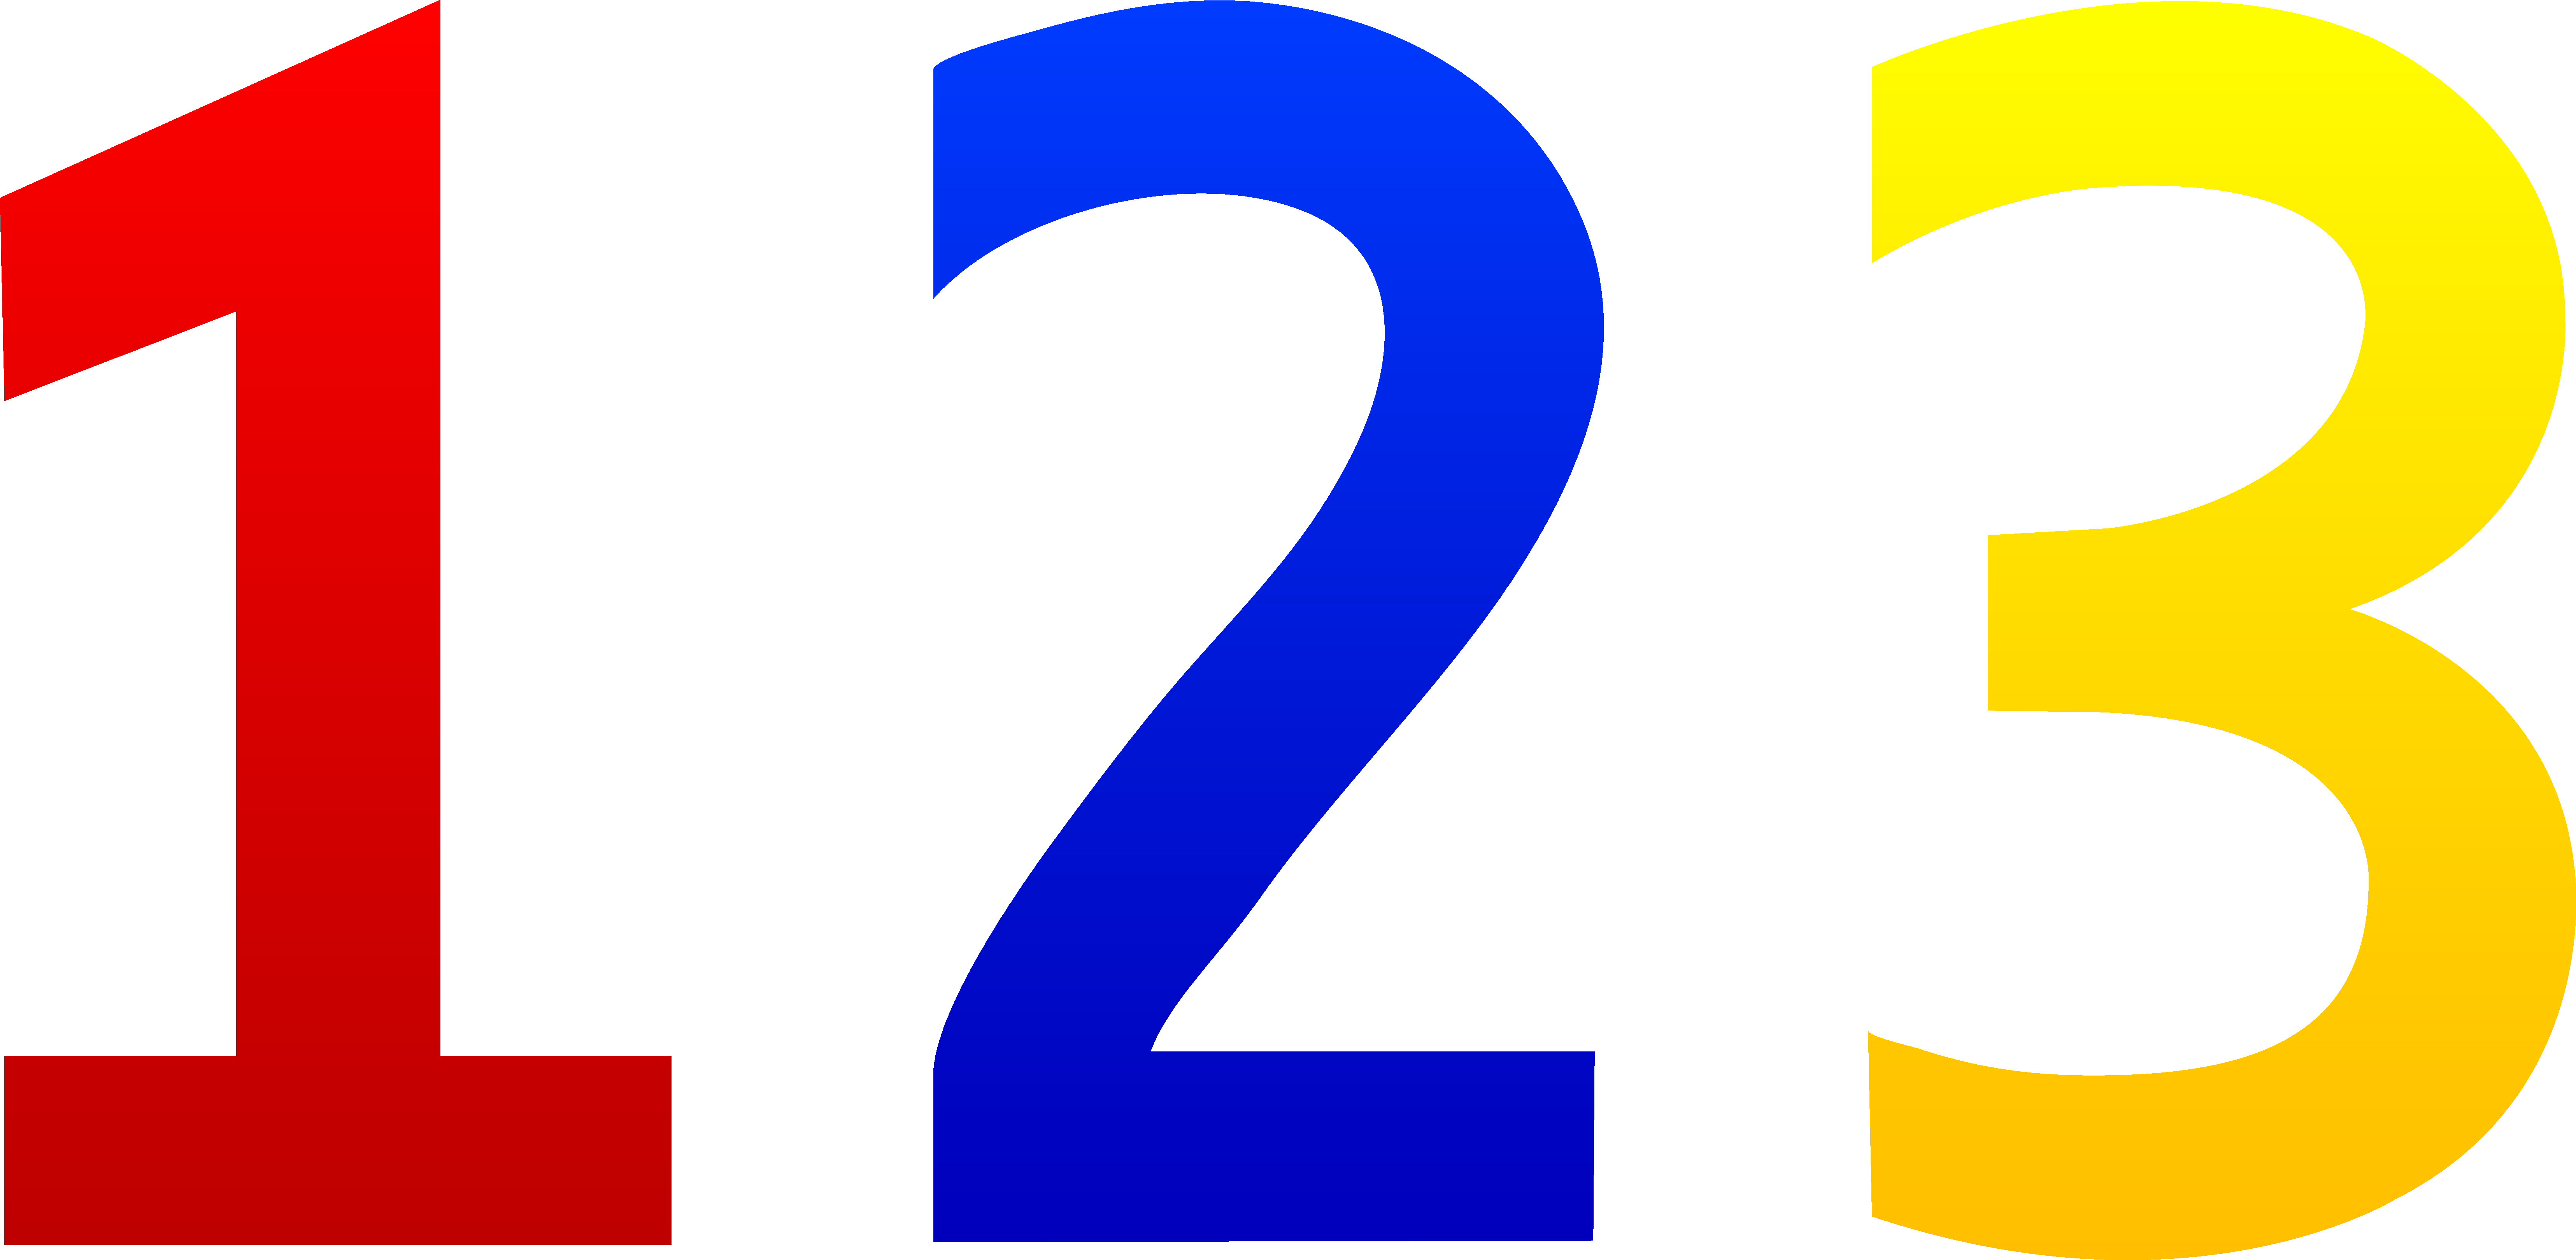 Colorful Numbers 123 - Free Clip Art